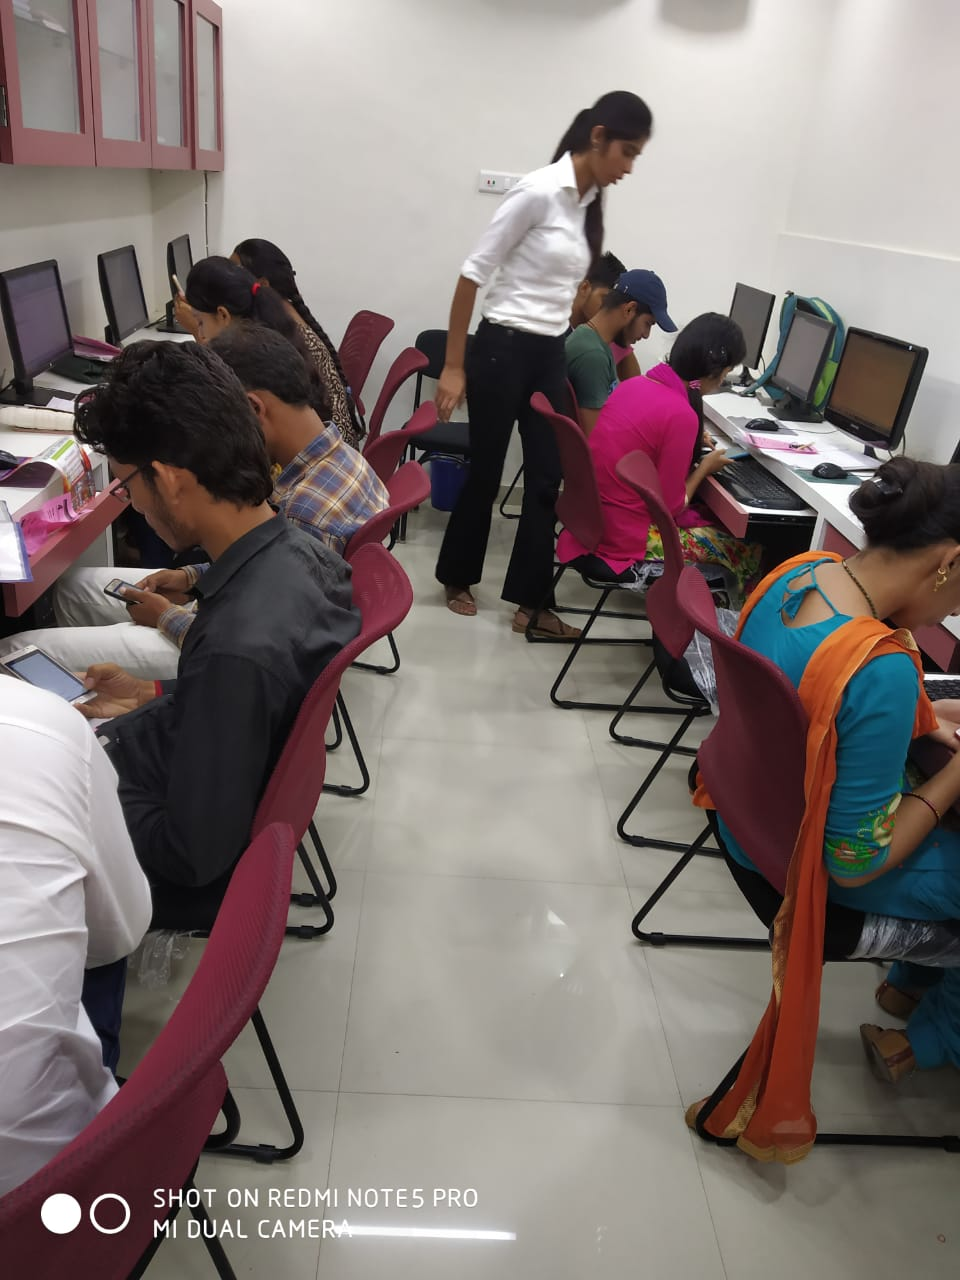 Webcom computer center Sirsa.jpeg